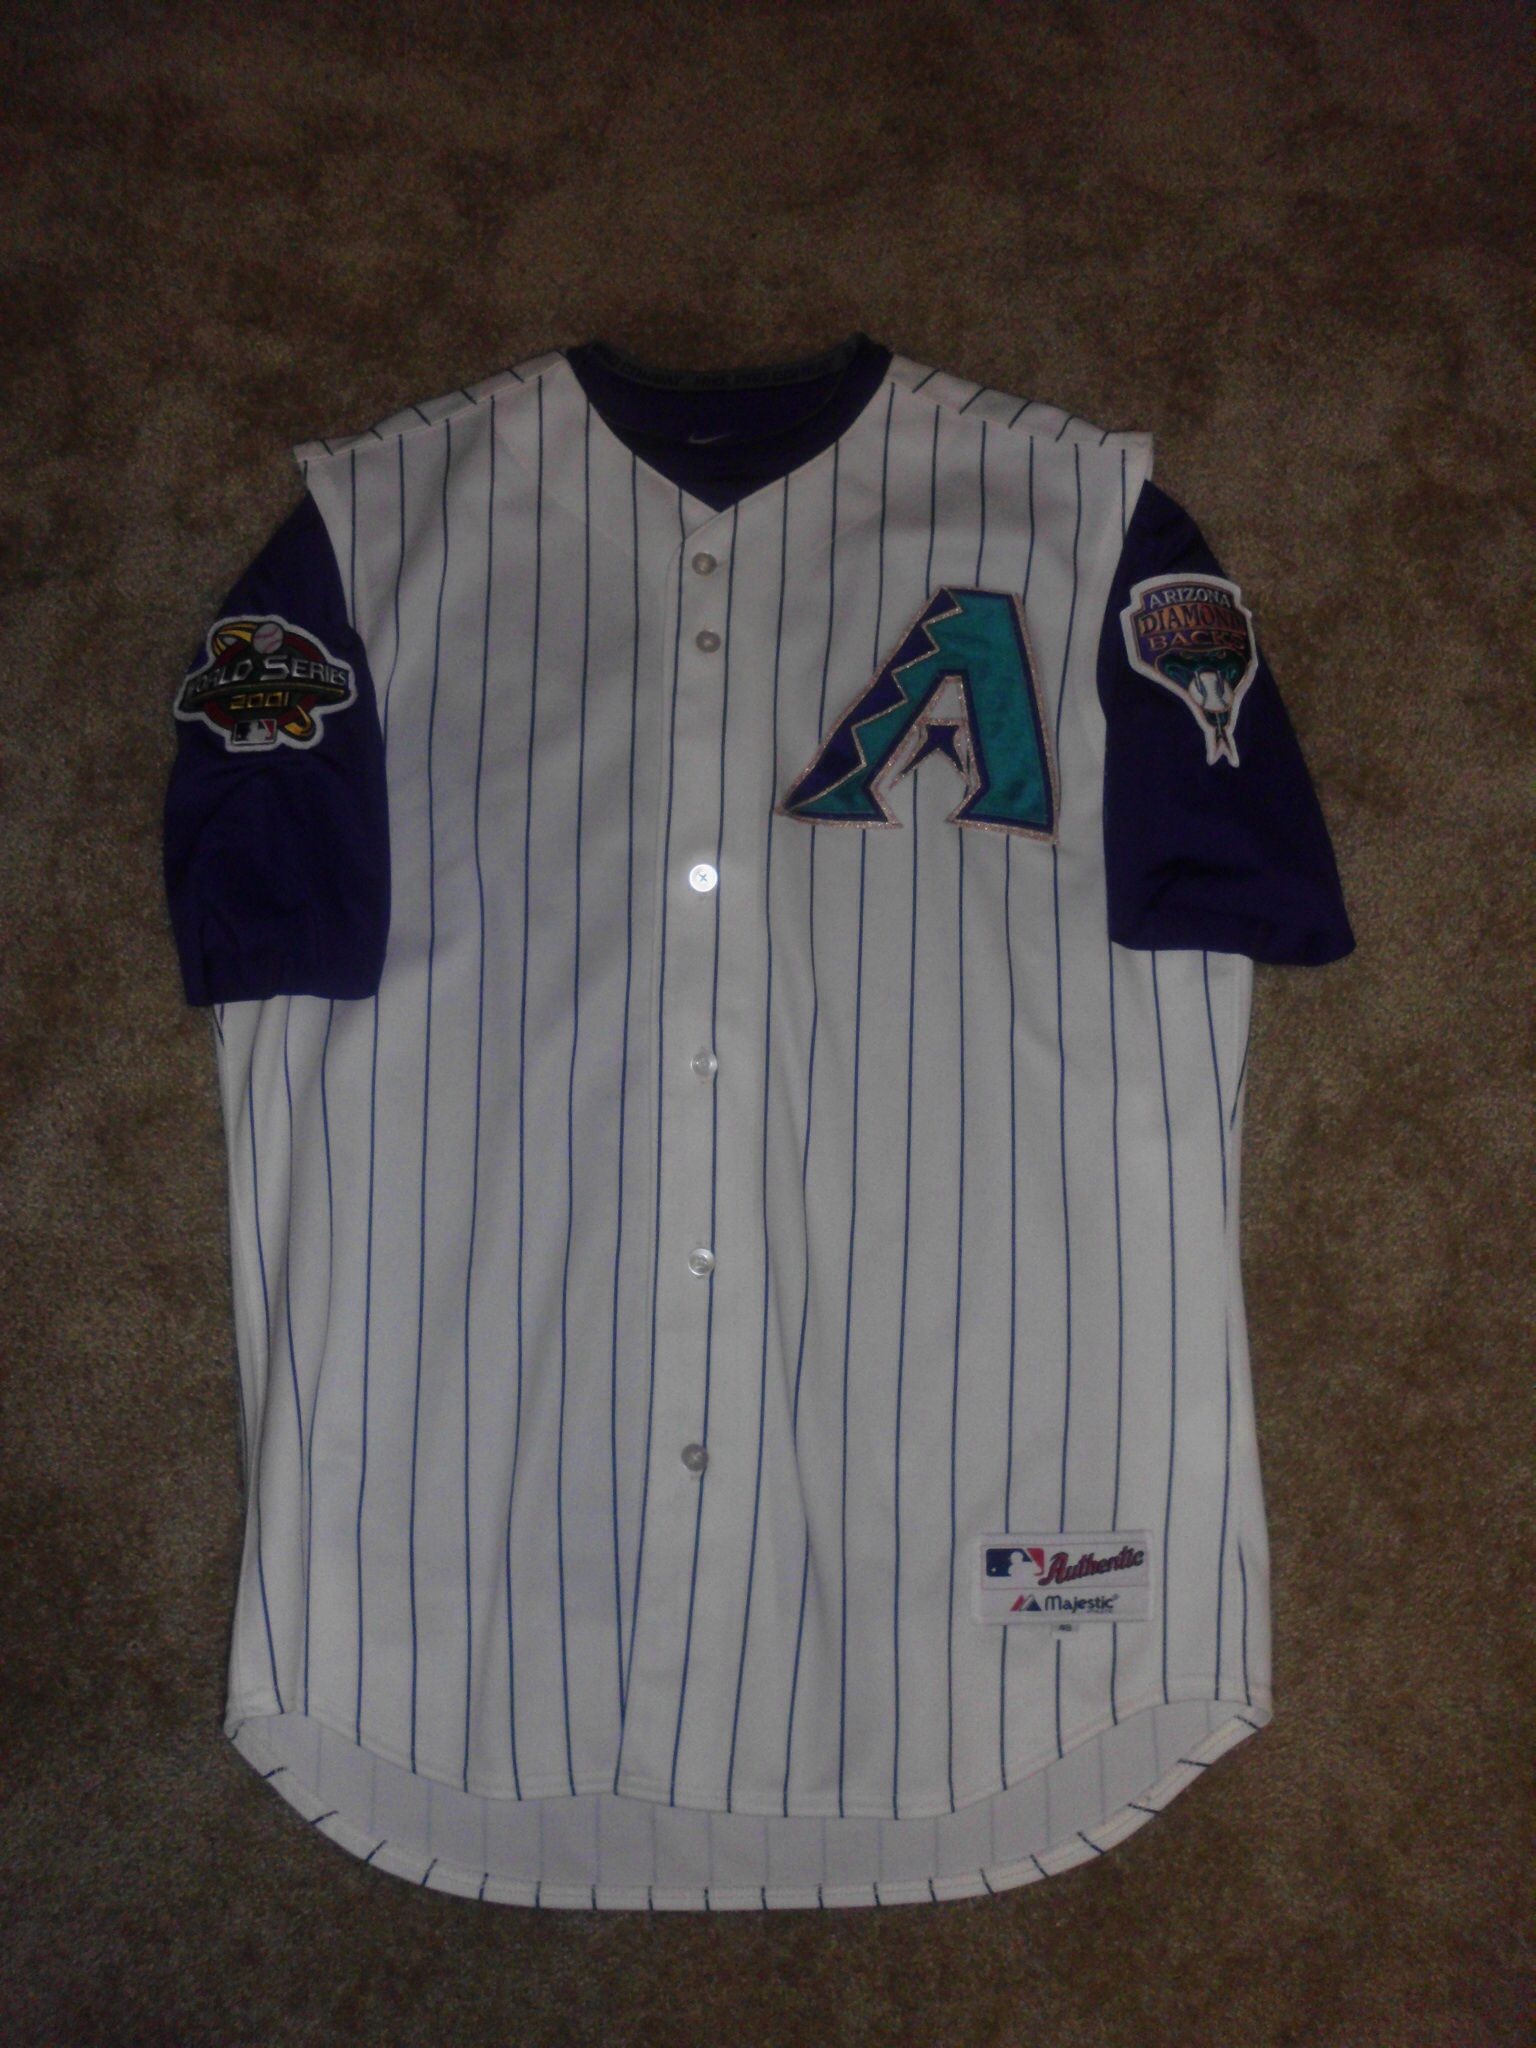 2001 World Series Arizona Diamondbacks Alternate Home